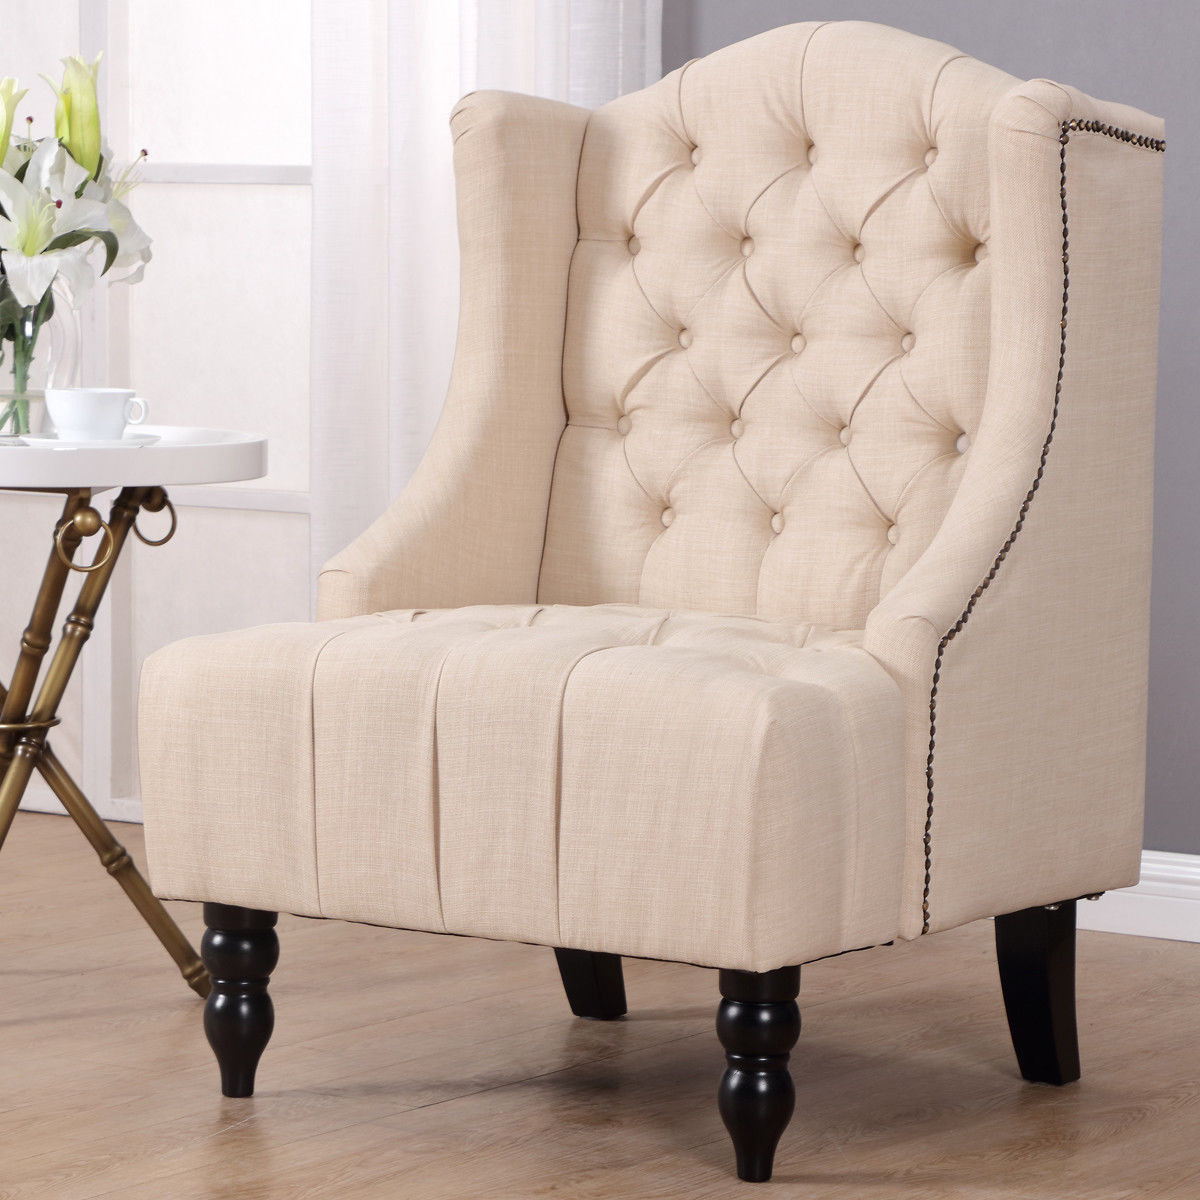 Modern Chairs Top 5 Luxury Fabric Brands Exhibiting At: Giantex Modern Tall Wing Back Tufted Accent Armchair